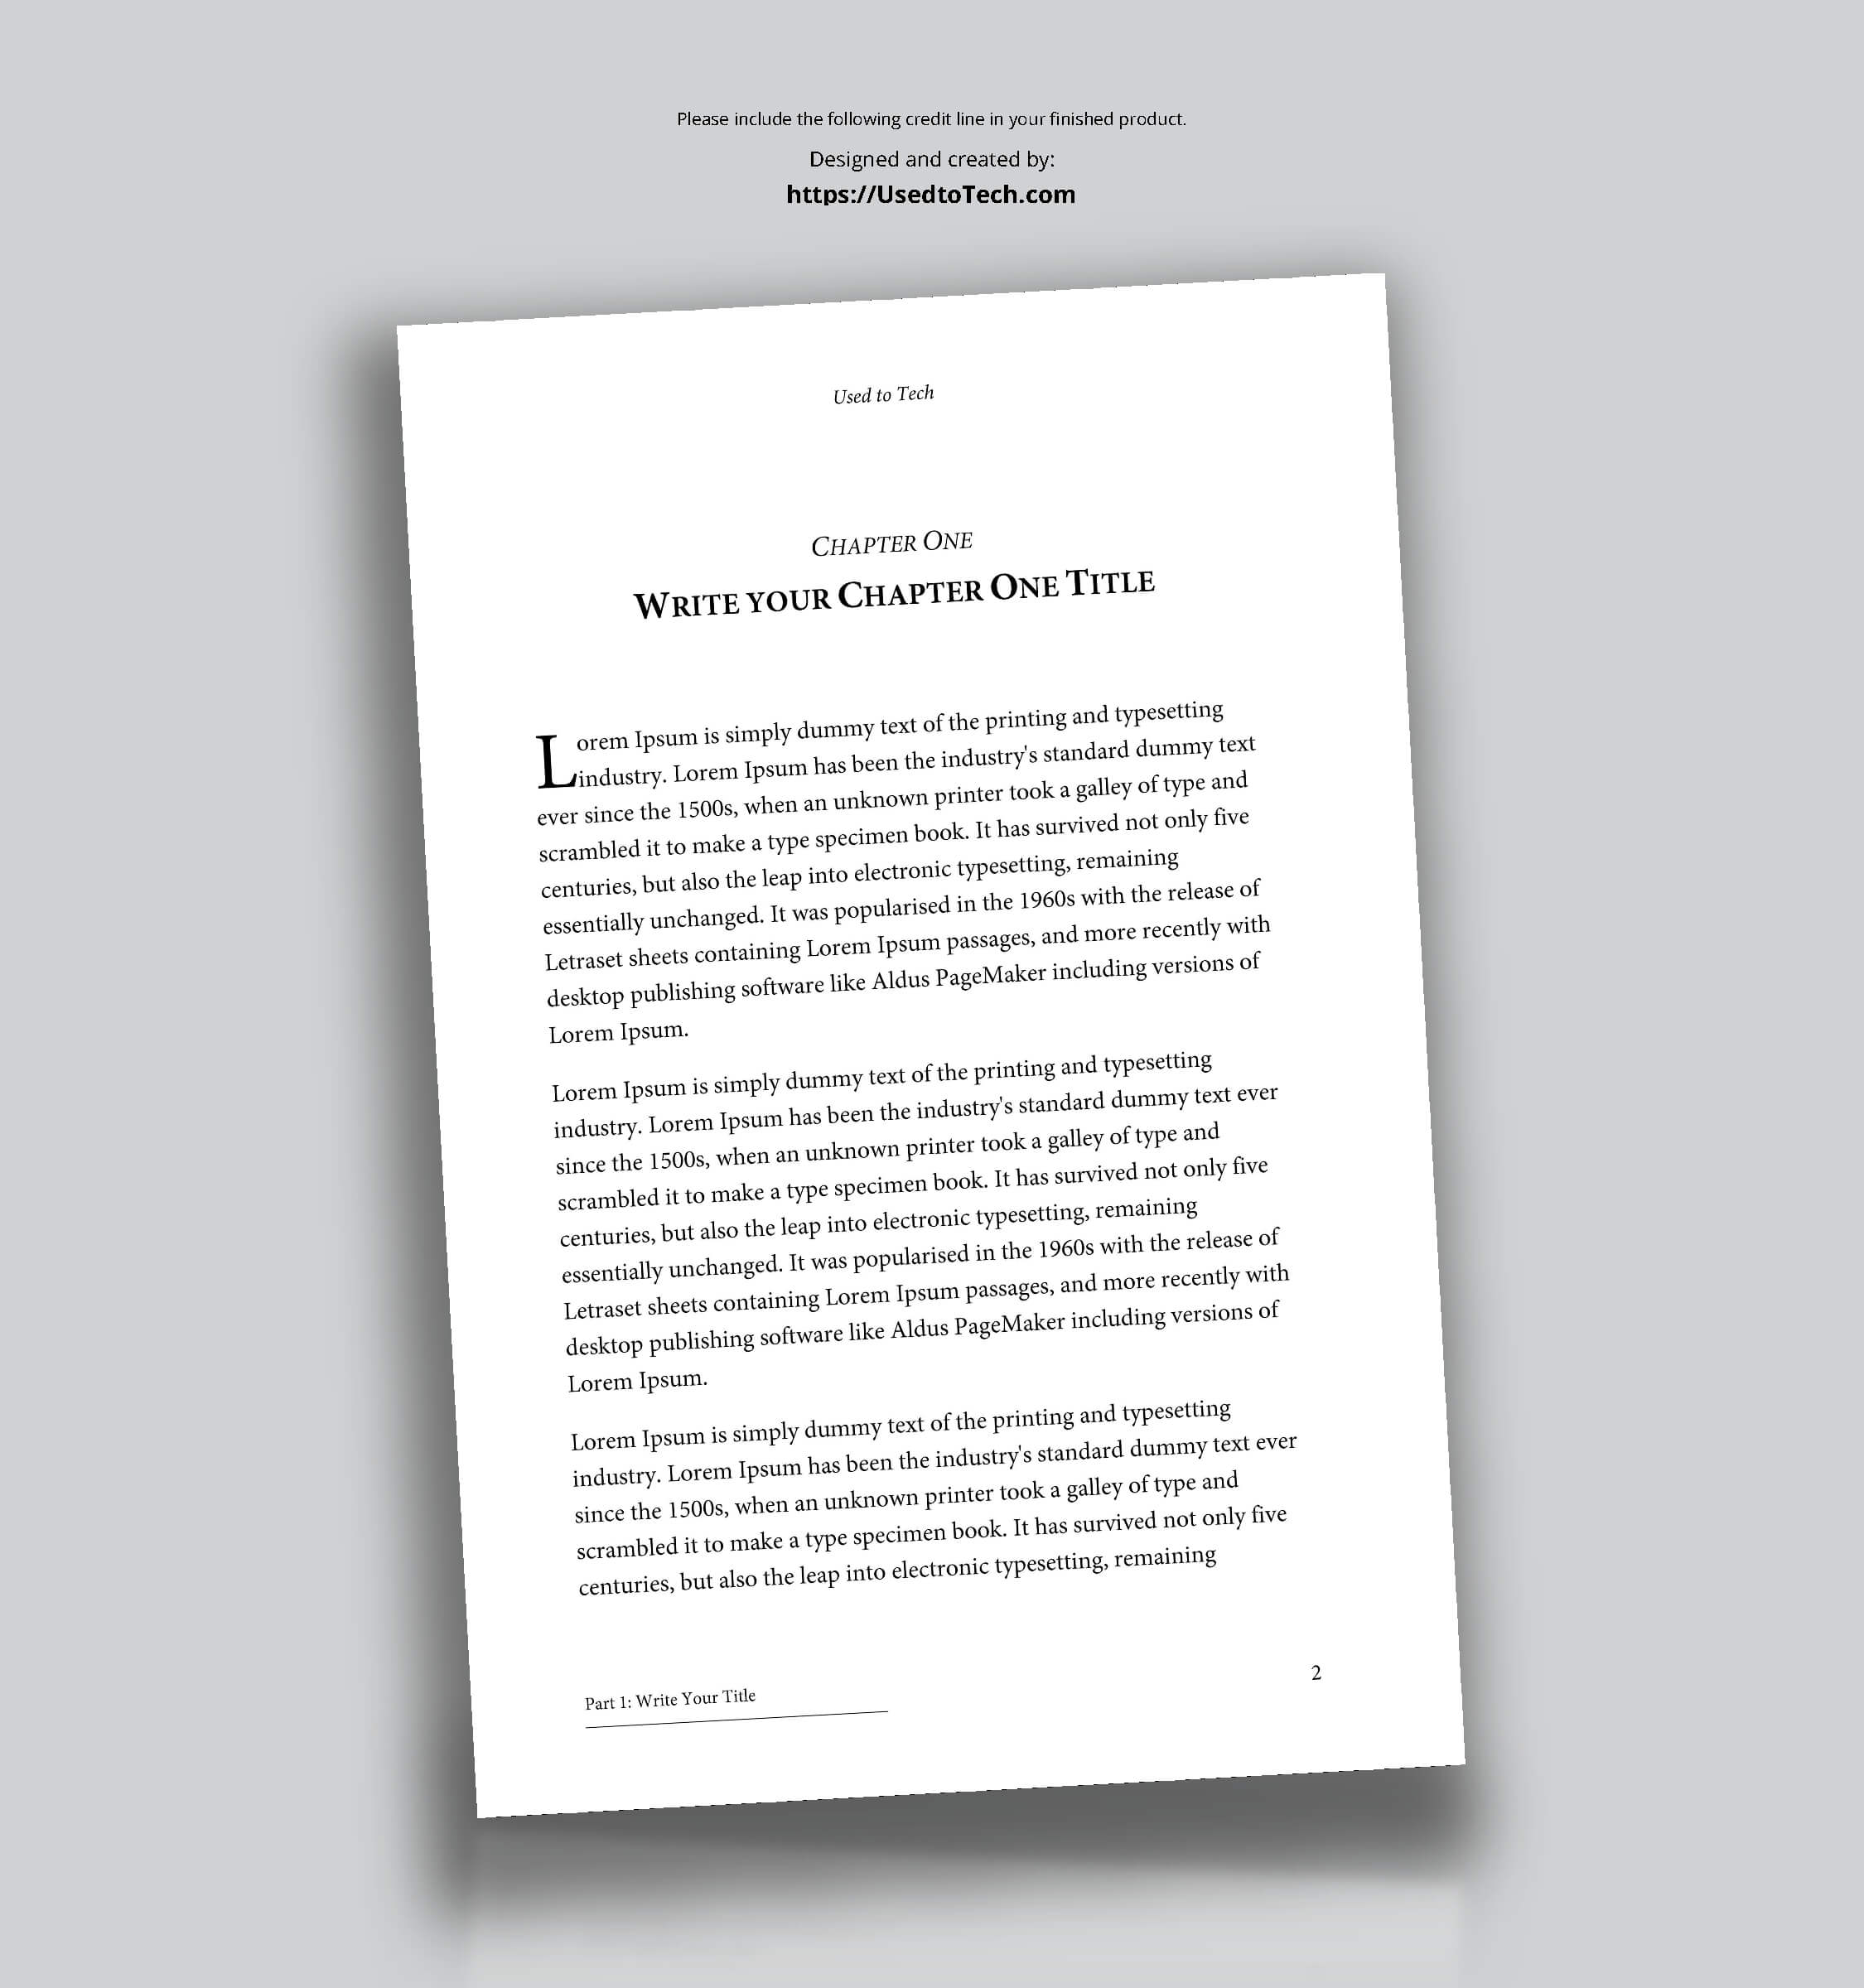 Professional-Looking Book Template For Word, Free - Used To Tech with How To Create A Book Template In Word